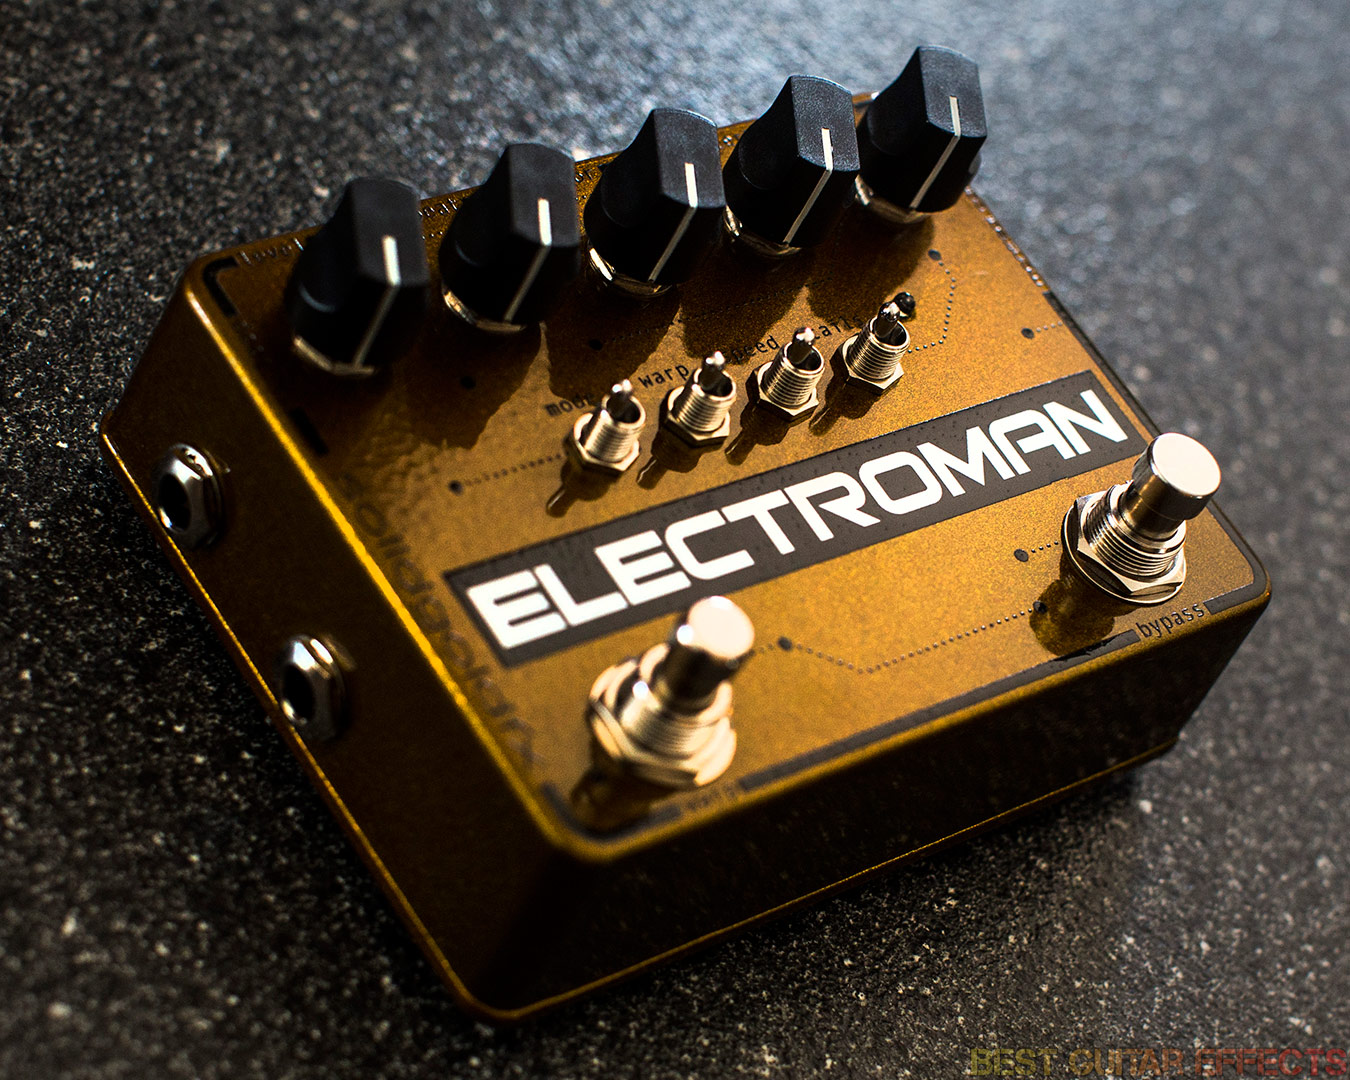 Top 20 Best Delay Pedals Of 2018 Gibson Guitar Board Updating The Electronics With A Pcb Do I Clip Builder Solidgoldfx Pedal Electroman Mkii Type Modulated Digital